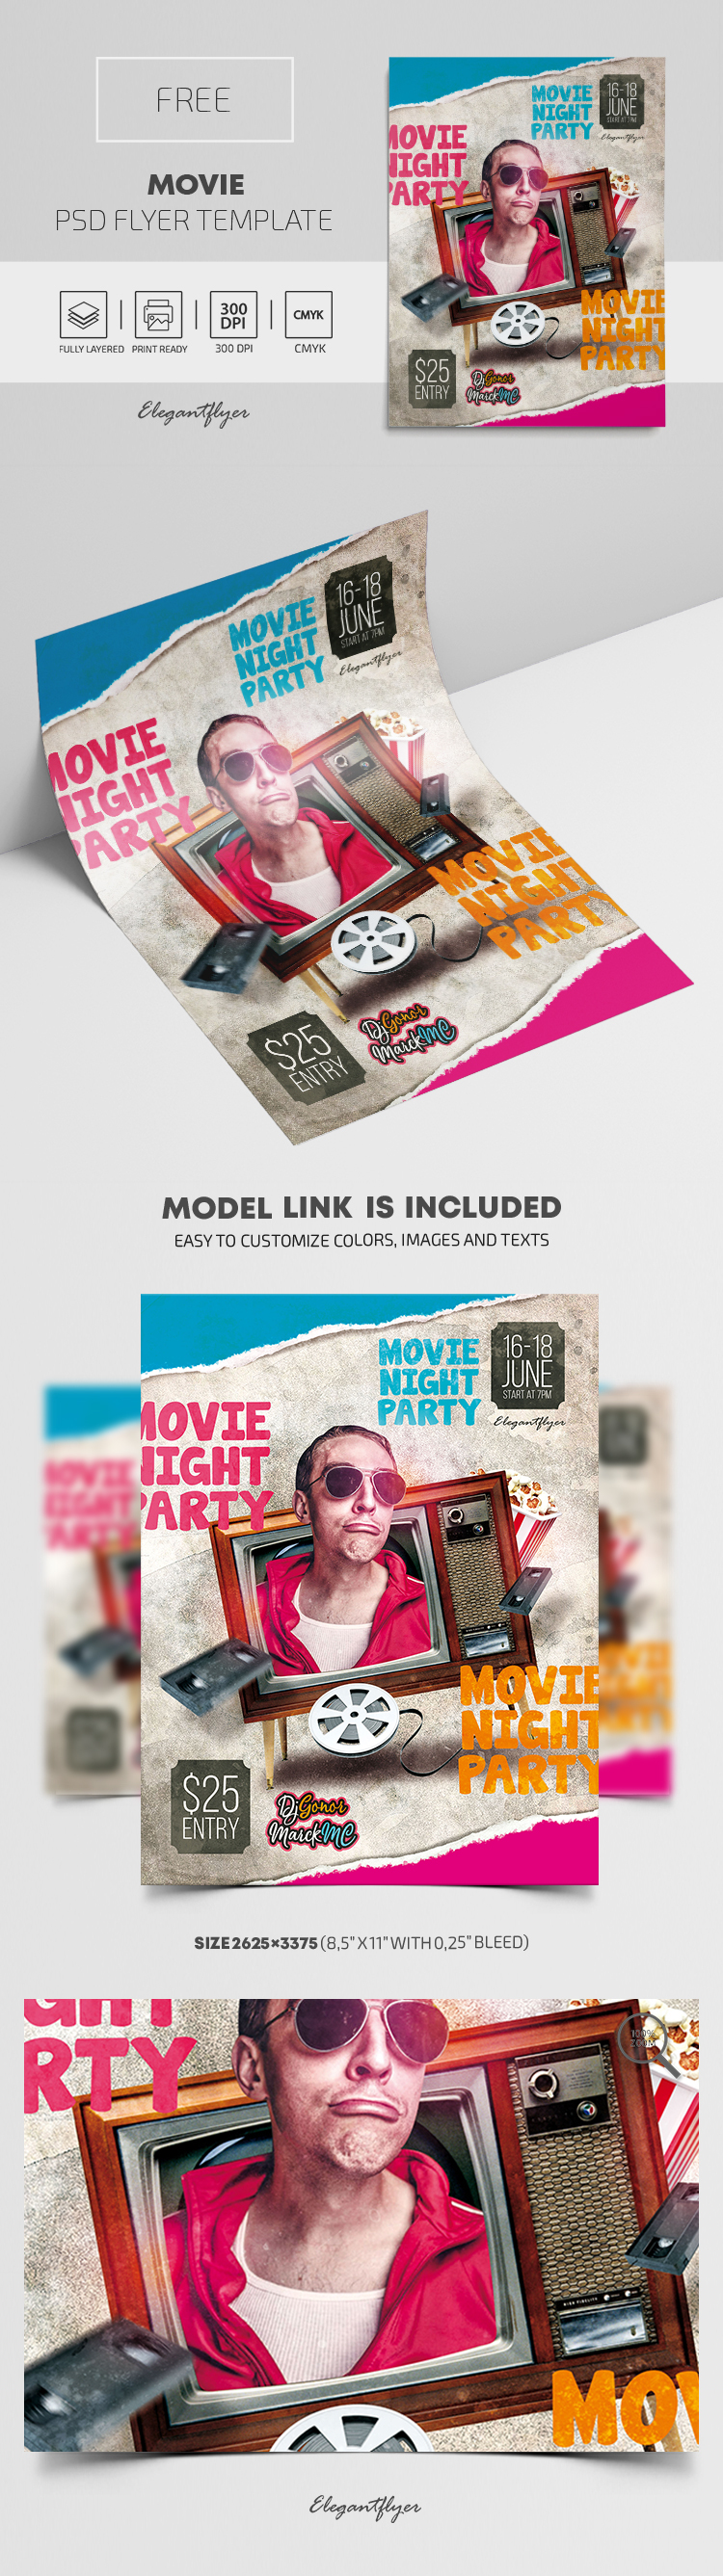 Movie – Free PSD Flyer Template